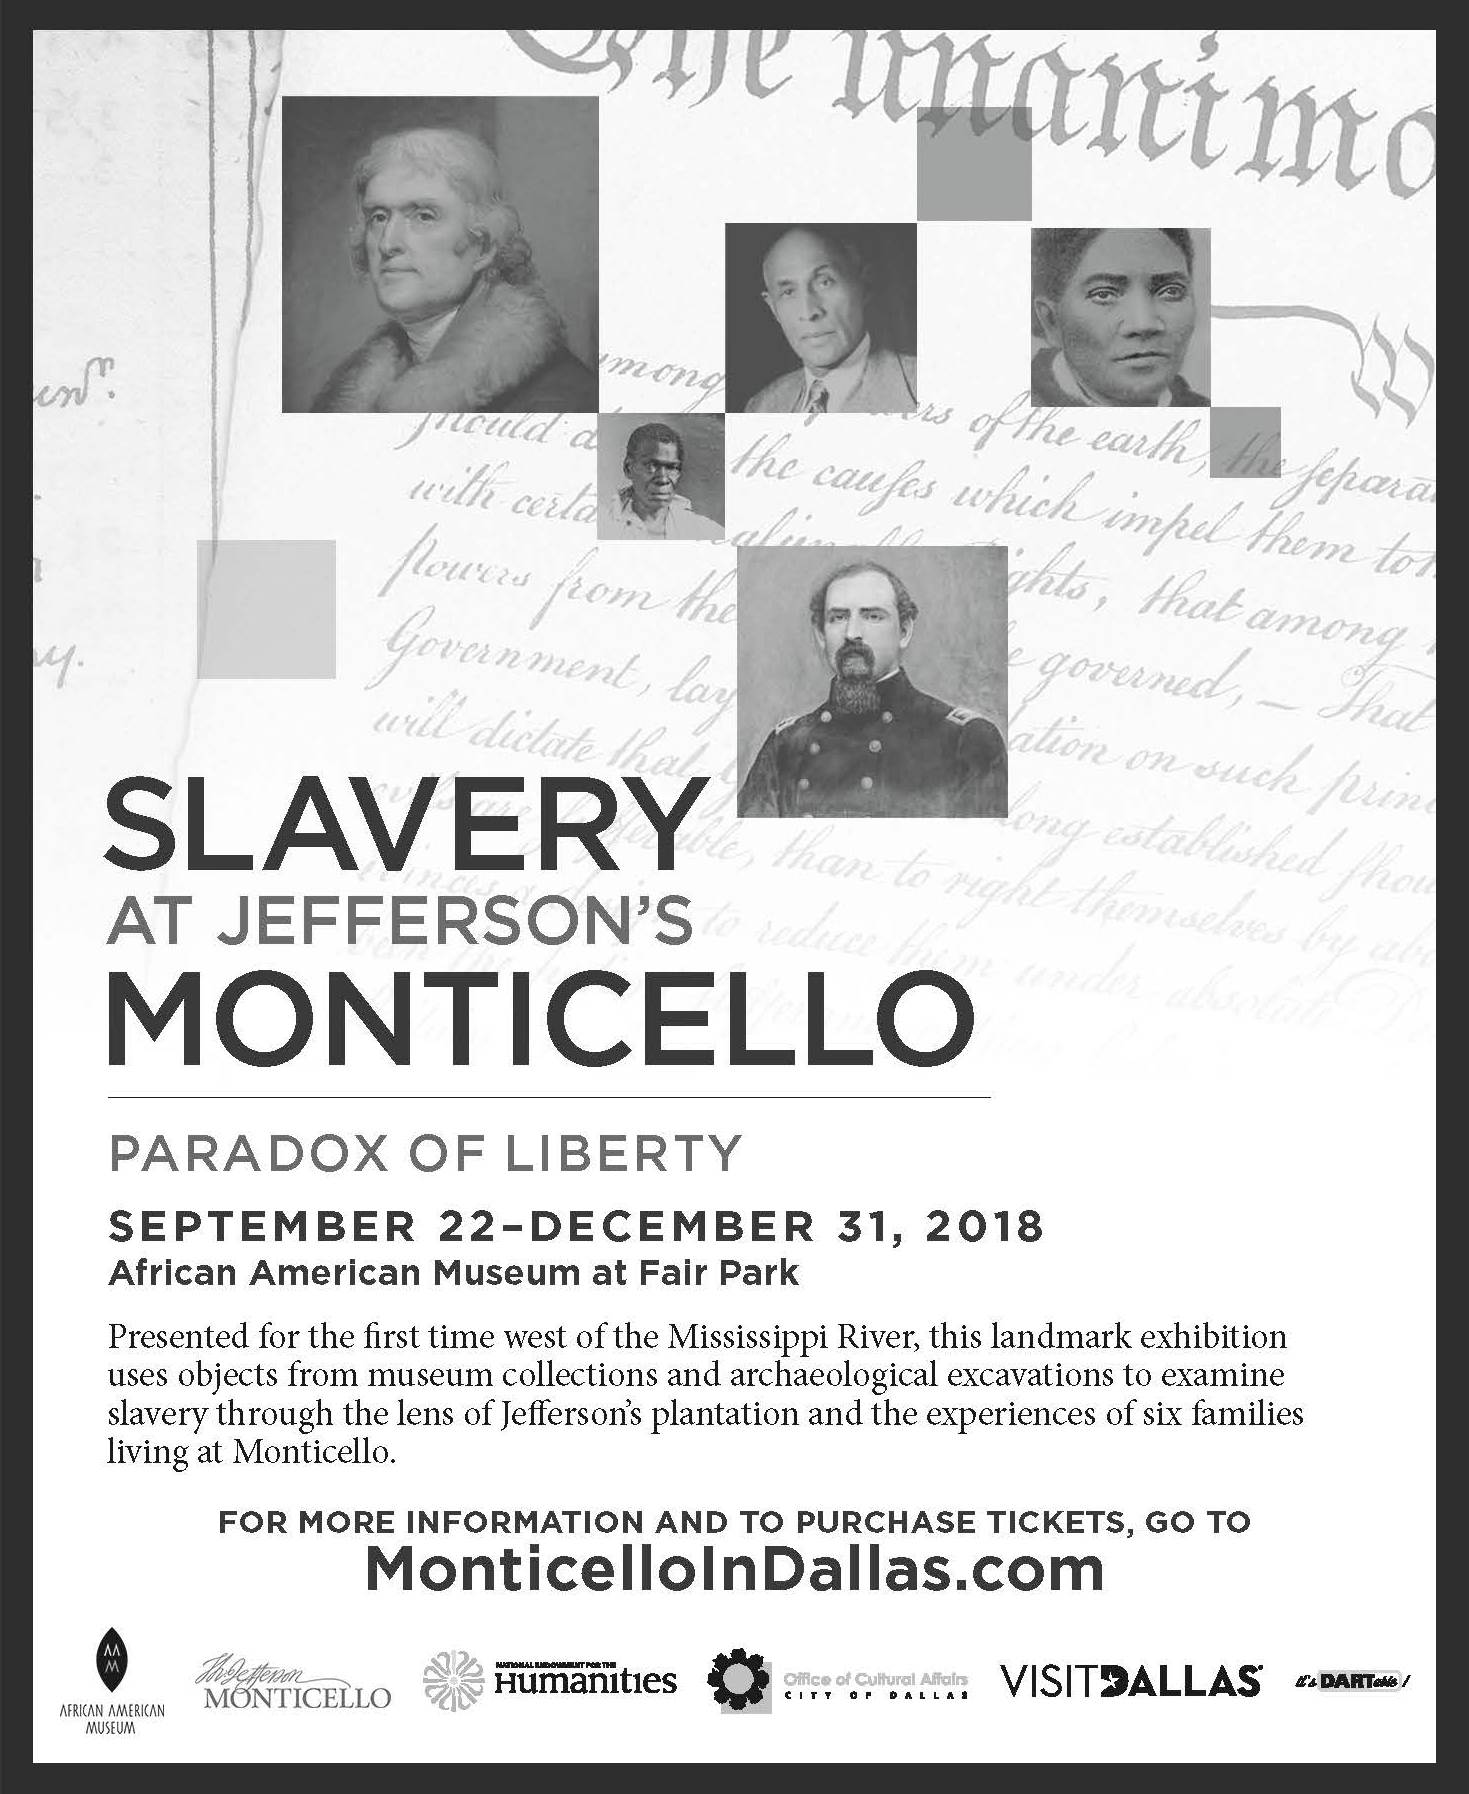 Slavery at Jefferson's Monticello: September 22-December 31, 2018